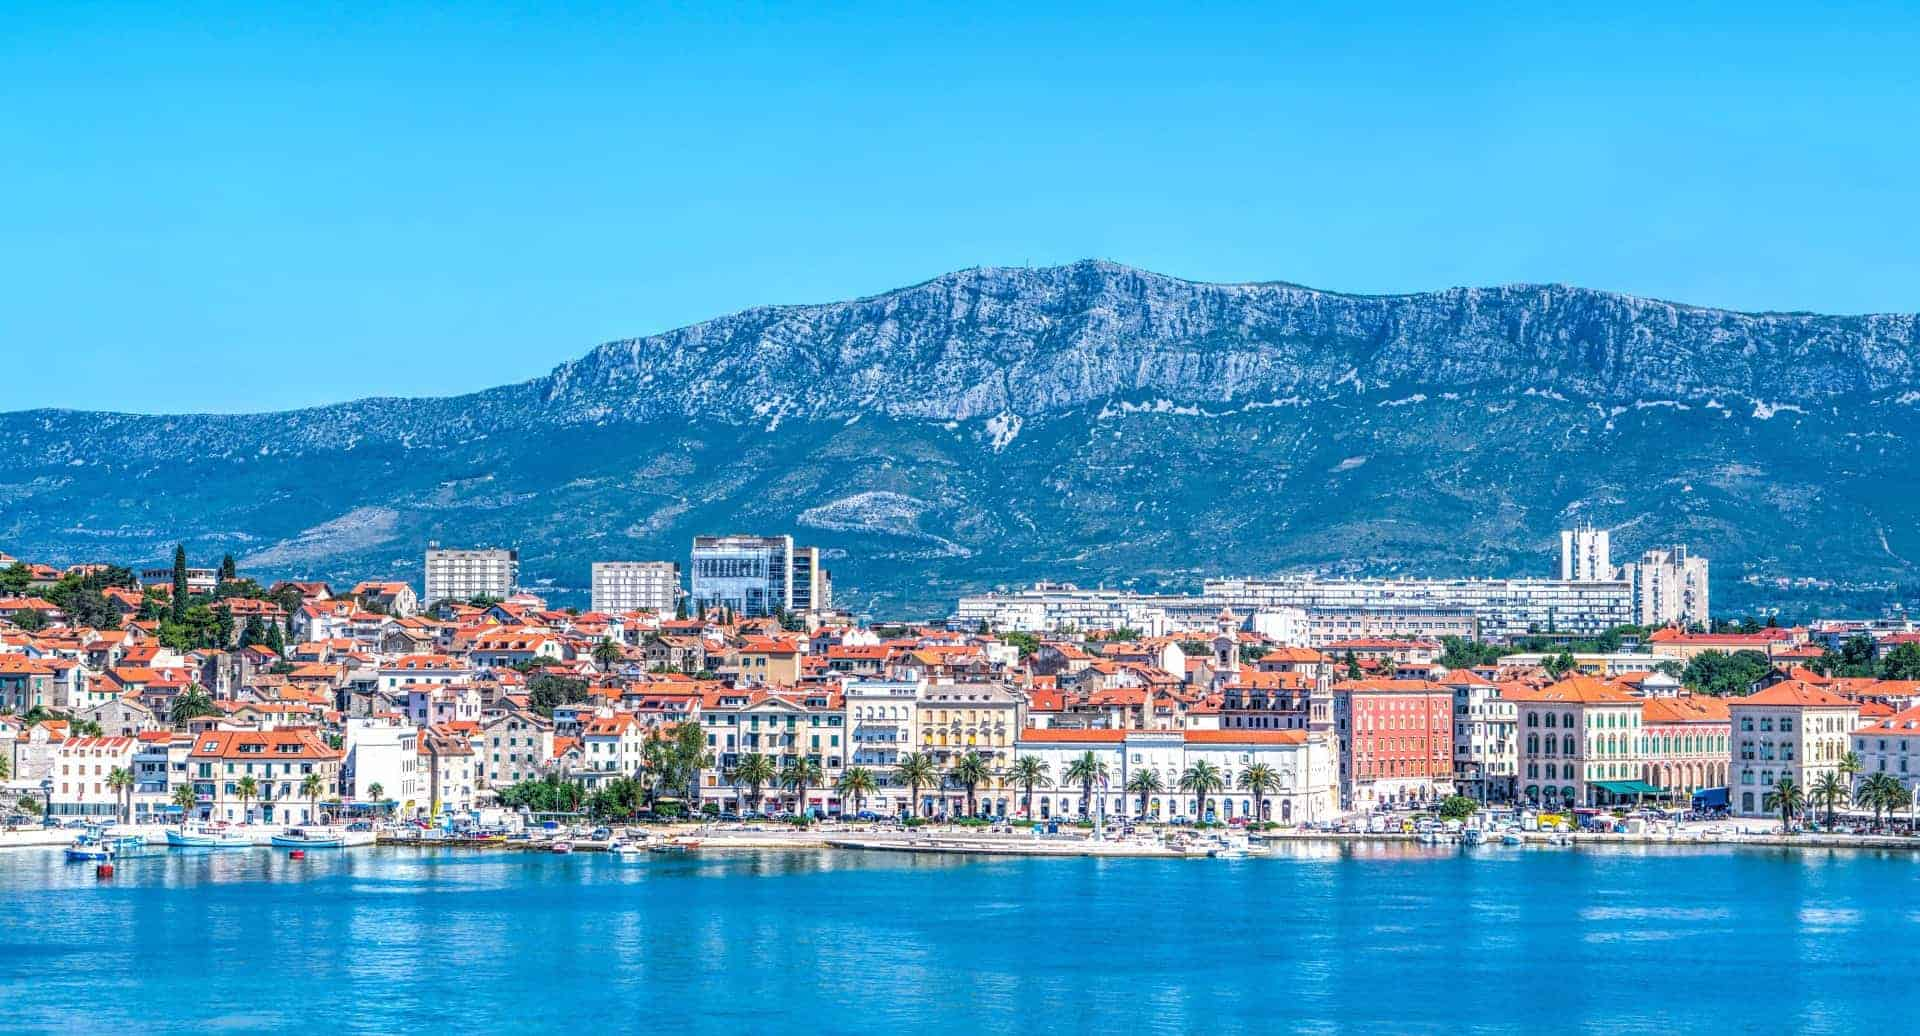 Croatia's long history and natural beauty lure tourists from all over the world.